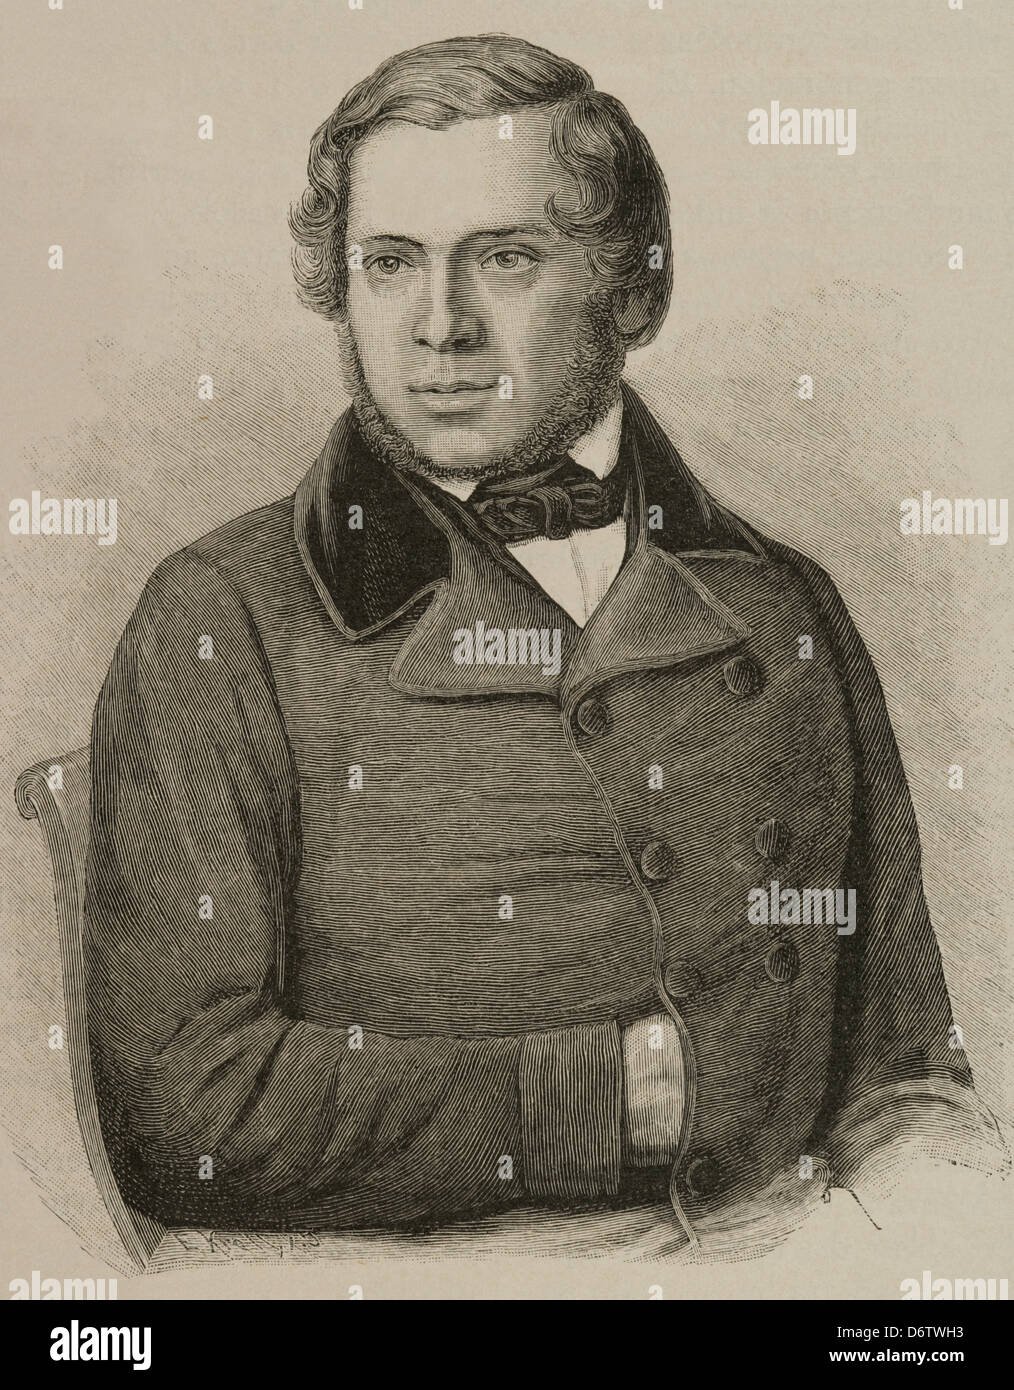 Ludwig Häusser (1818–1867). Was a German historian. Engraving. 'Universal History', 1885. - Stock Image